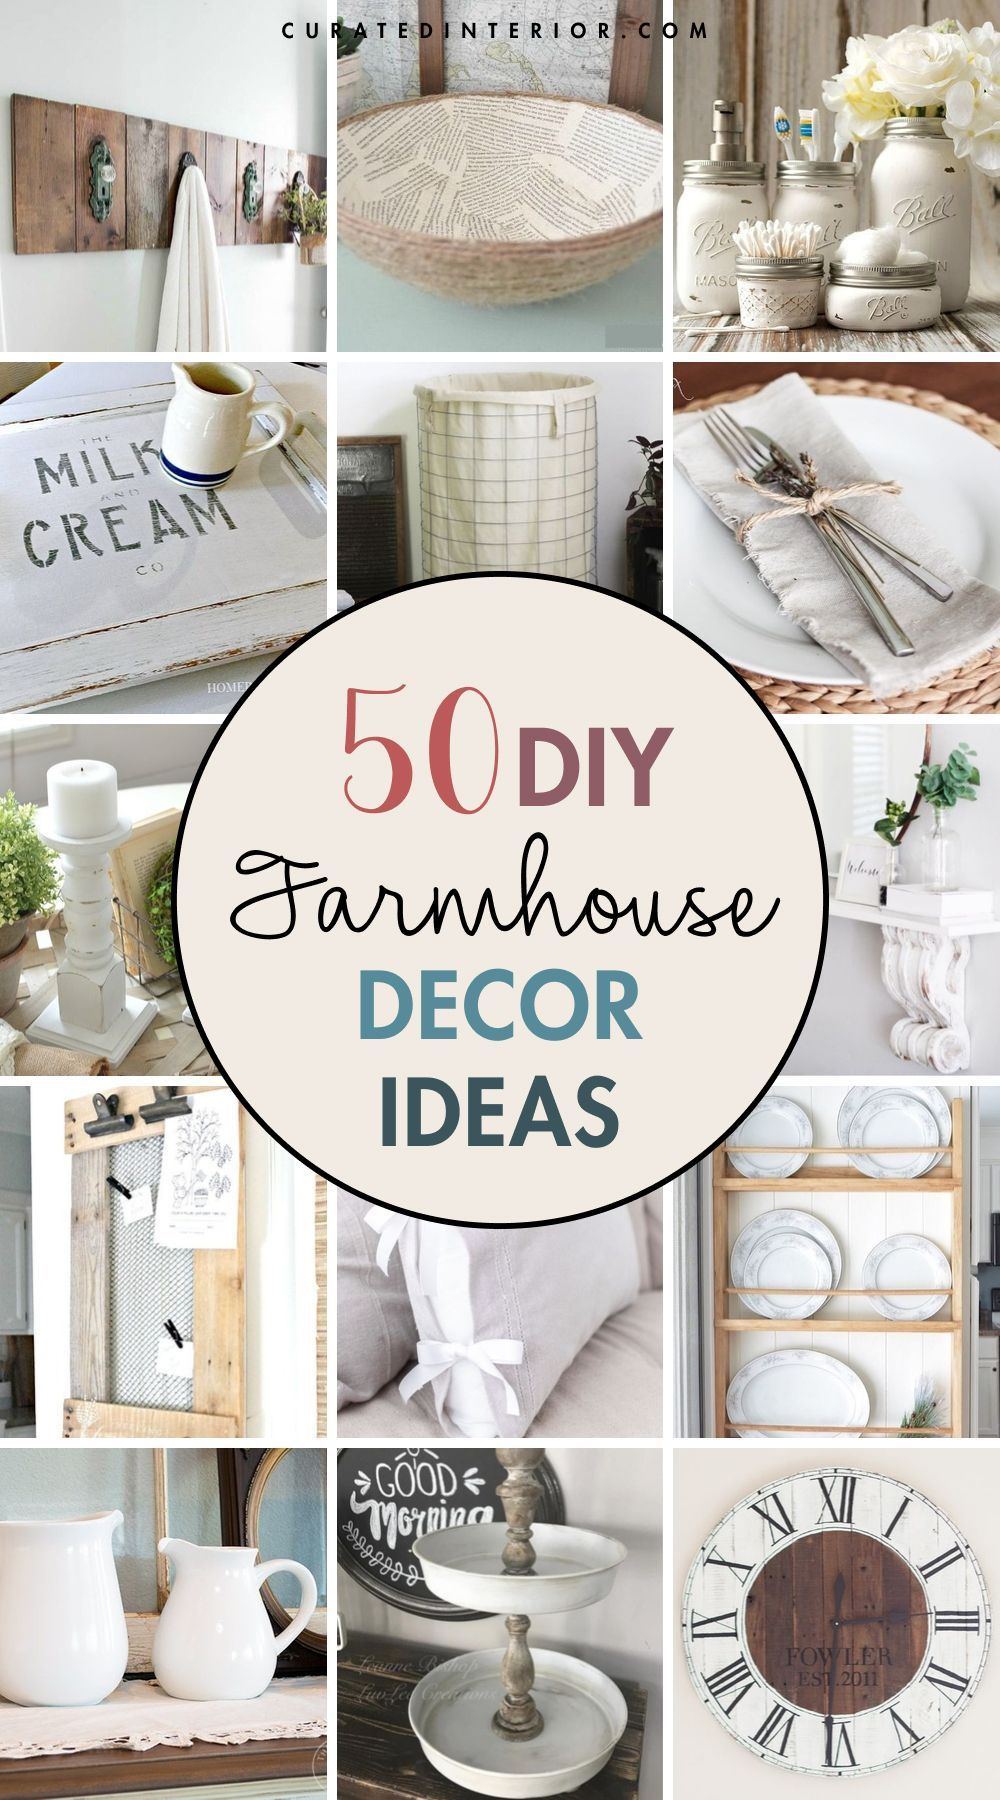 50 DIY Farmhouse Decor Ideas